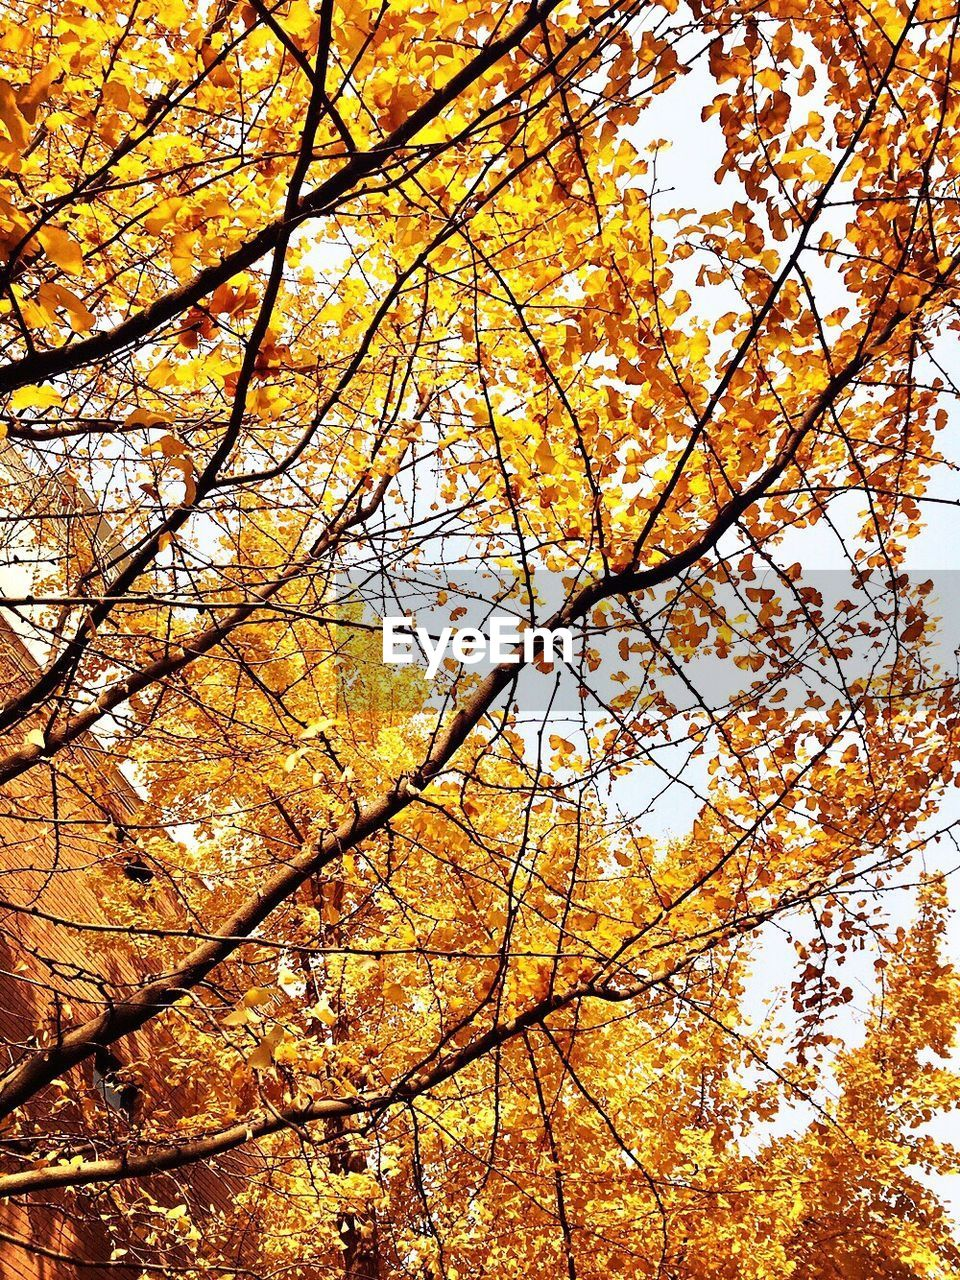 tree, autumn, branch, change, low angle view, nature, beauty in nature, leaf, growth, outdoors, no people, day, tranquility, maple tree, backgrounds, scenics, full frame, sky, maple, close-up, freshness